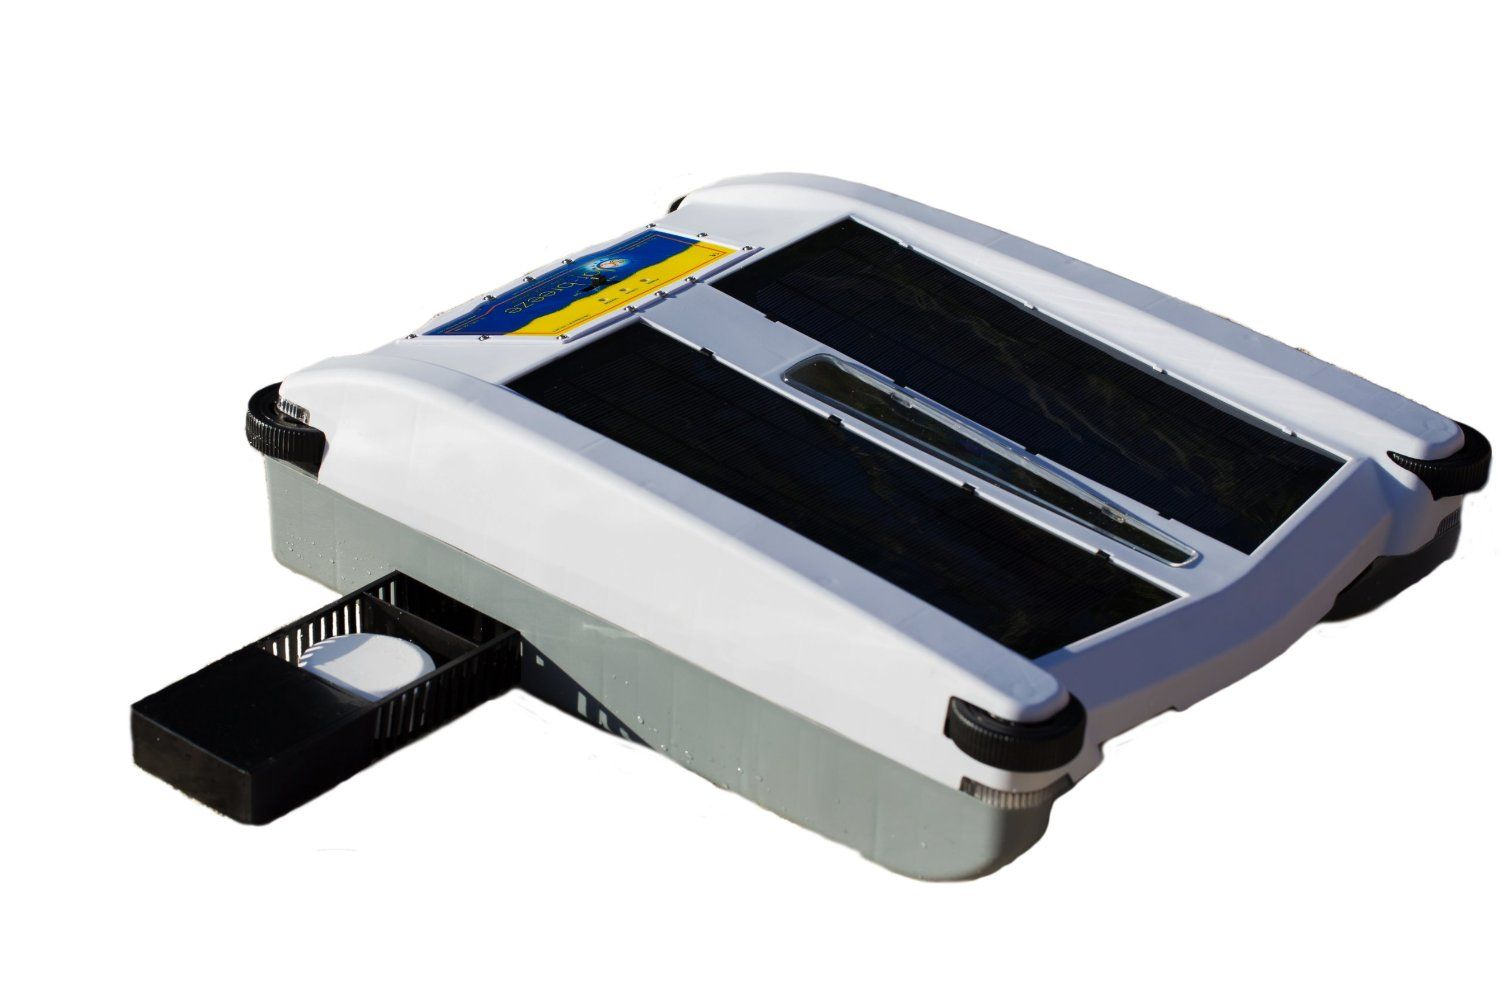 Robotic skimmer solar breeze review new pool cleaner for Automatic pool cleaner reviews 2014